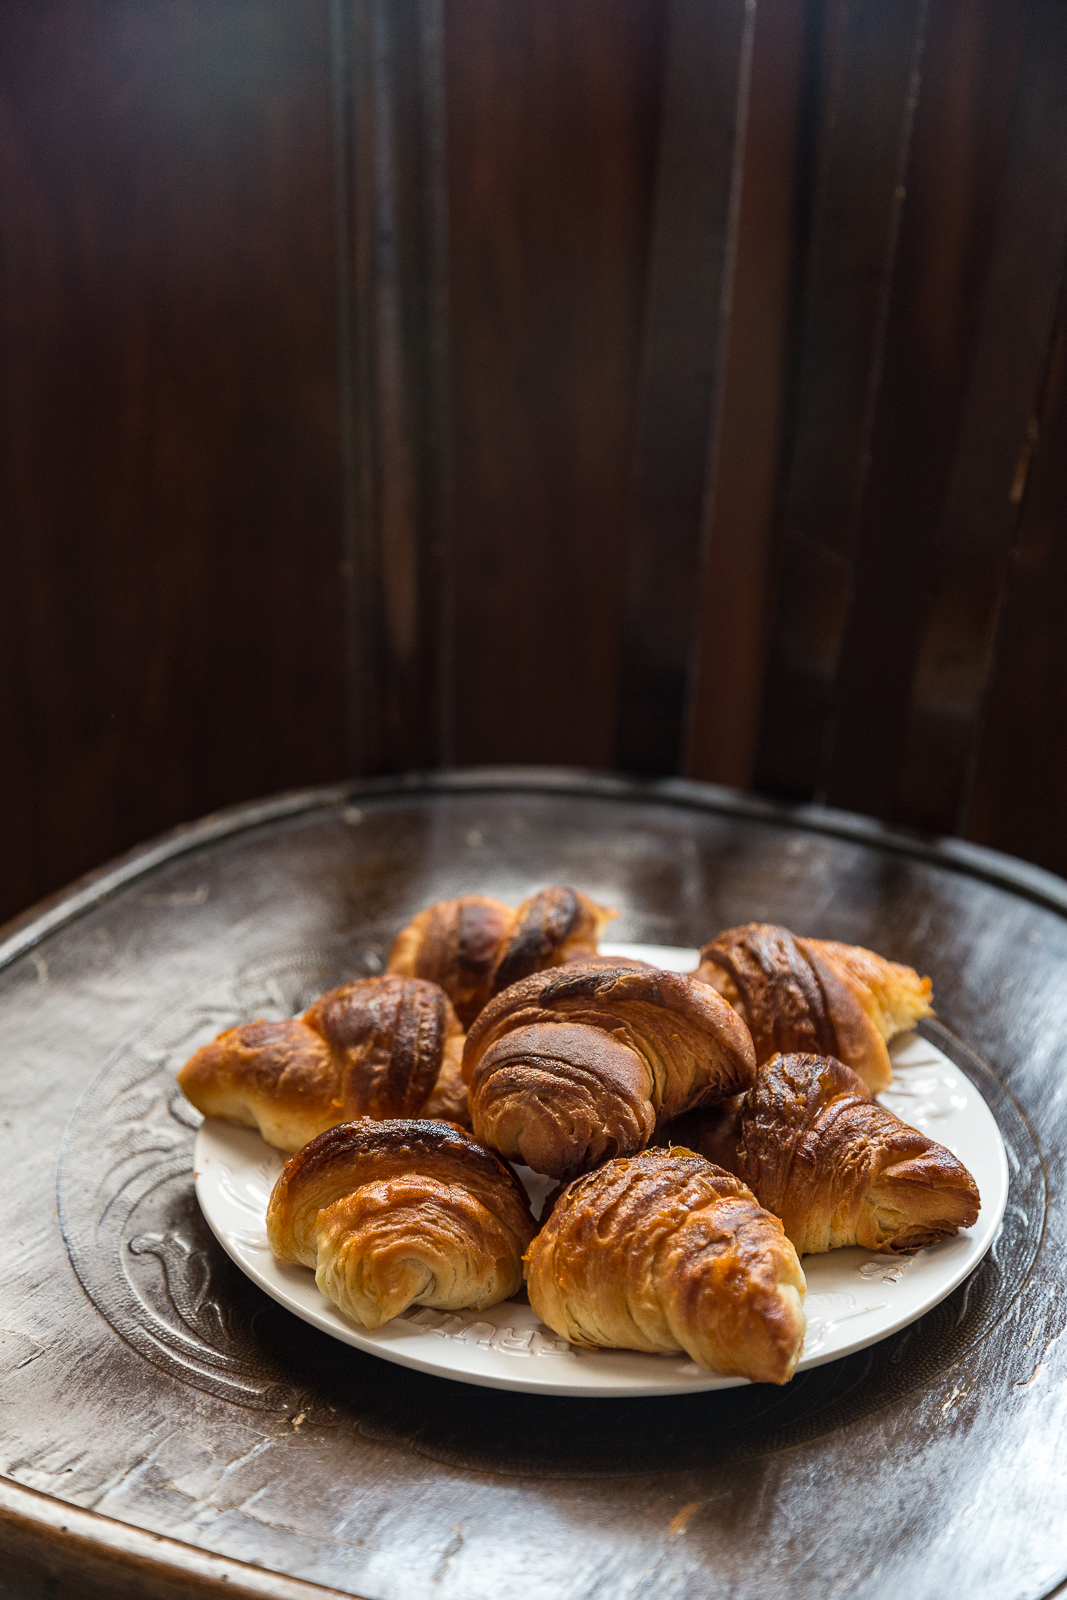 Italian Croissants And Breakfast In A Bar For The Italian Table Talk